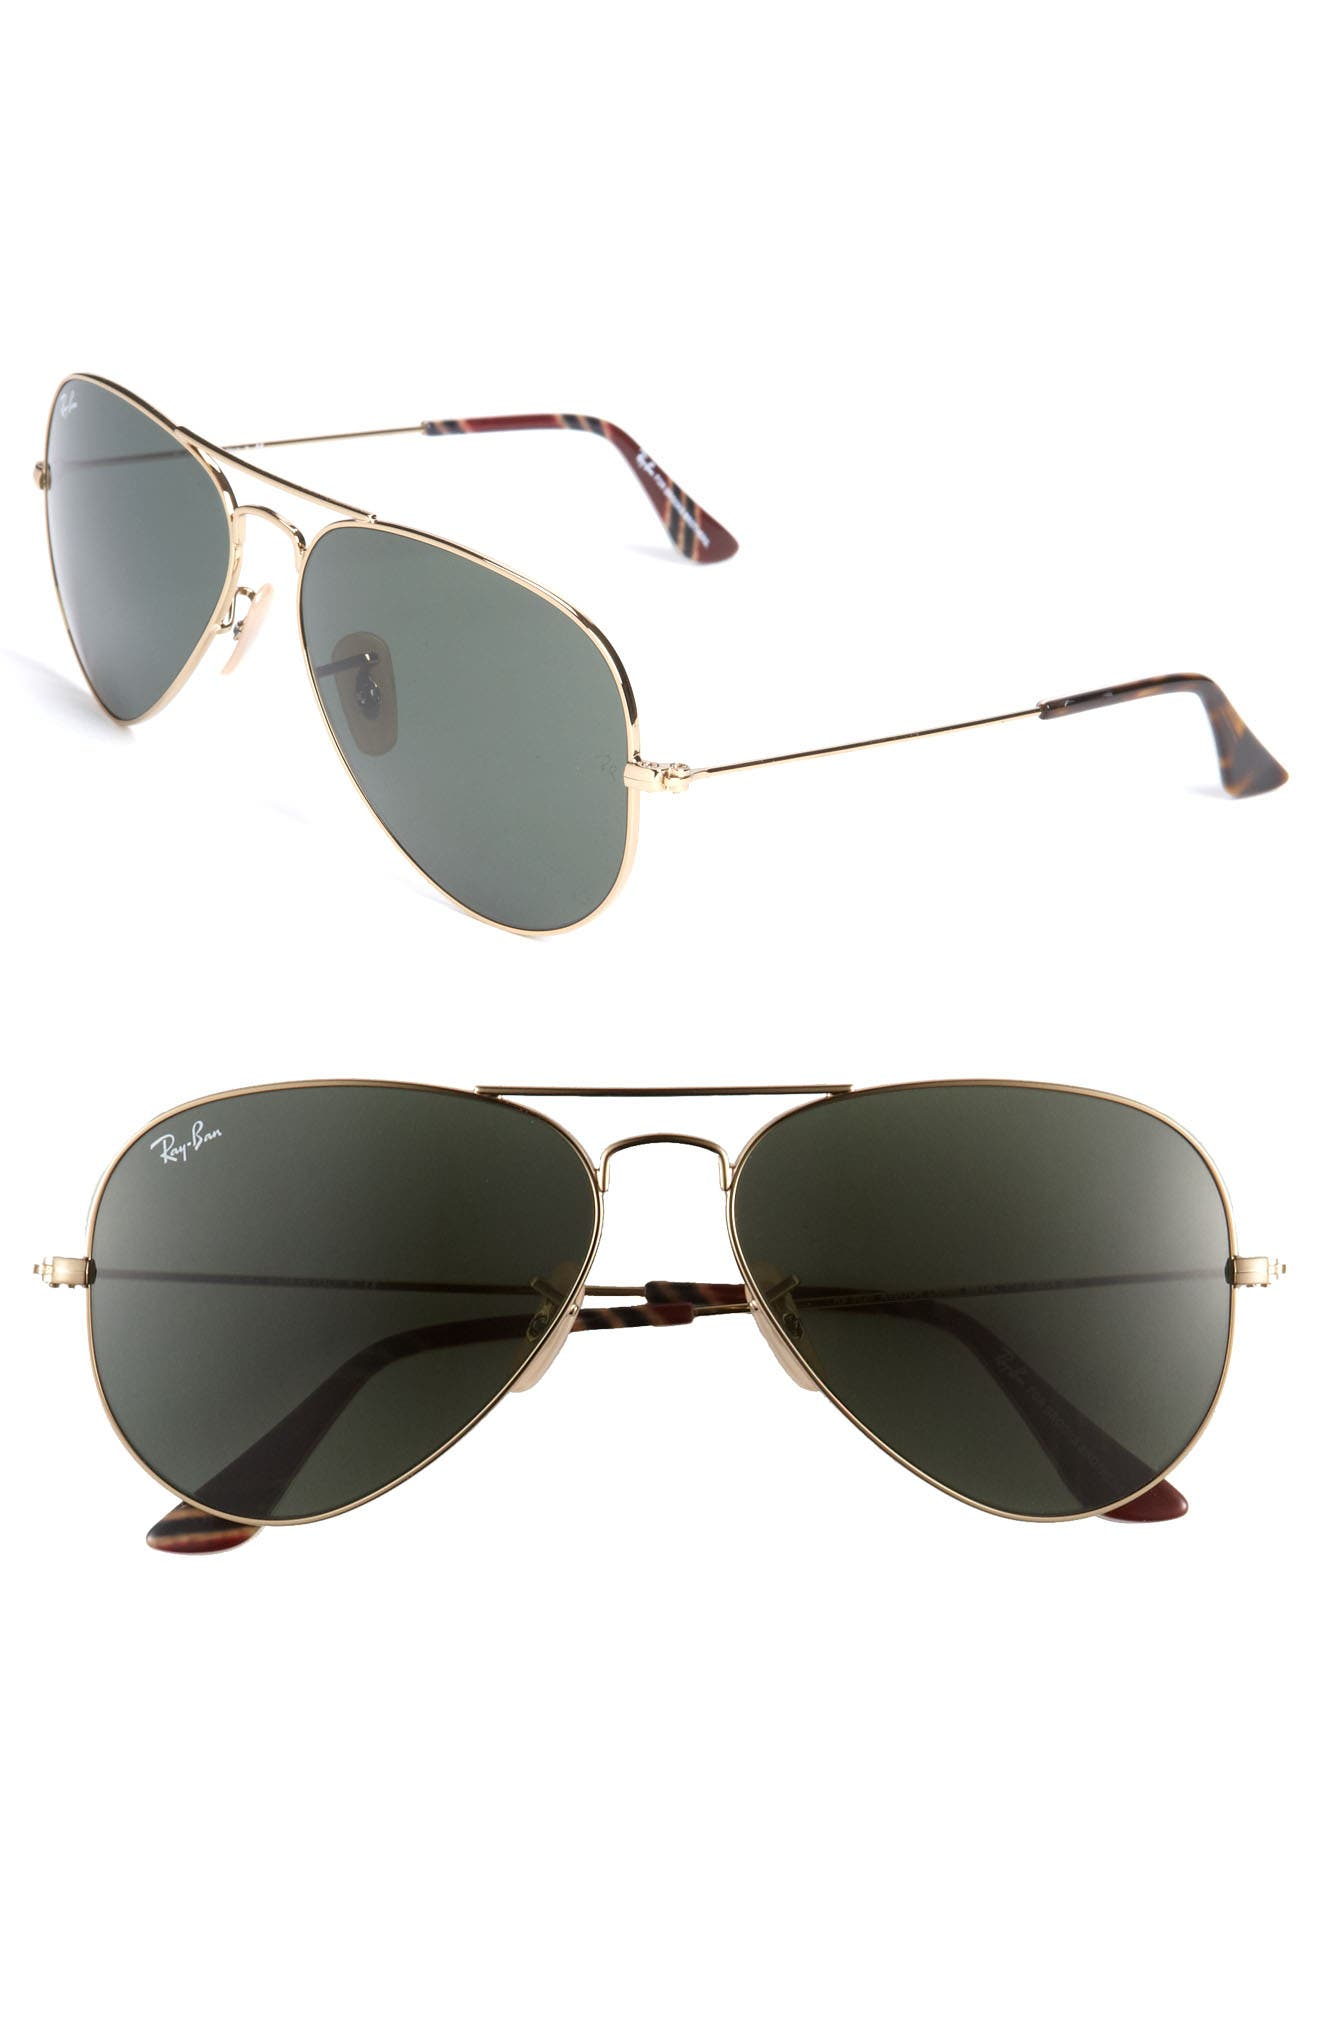 Ray-Ban Original Aviator 5m Sunglasses -